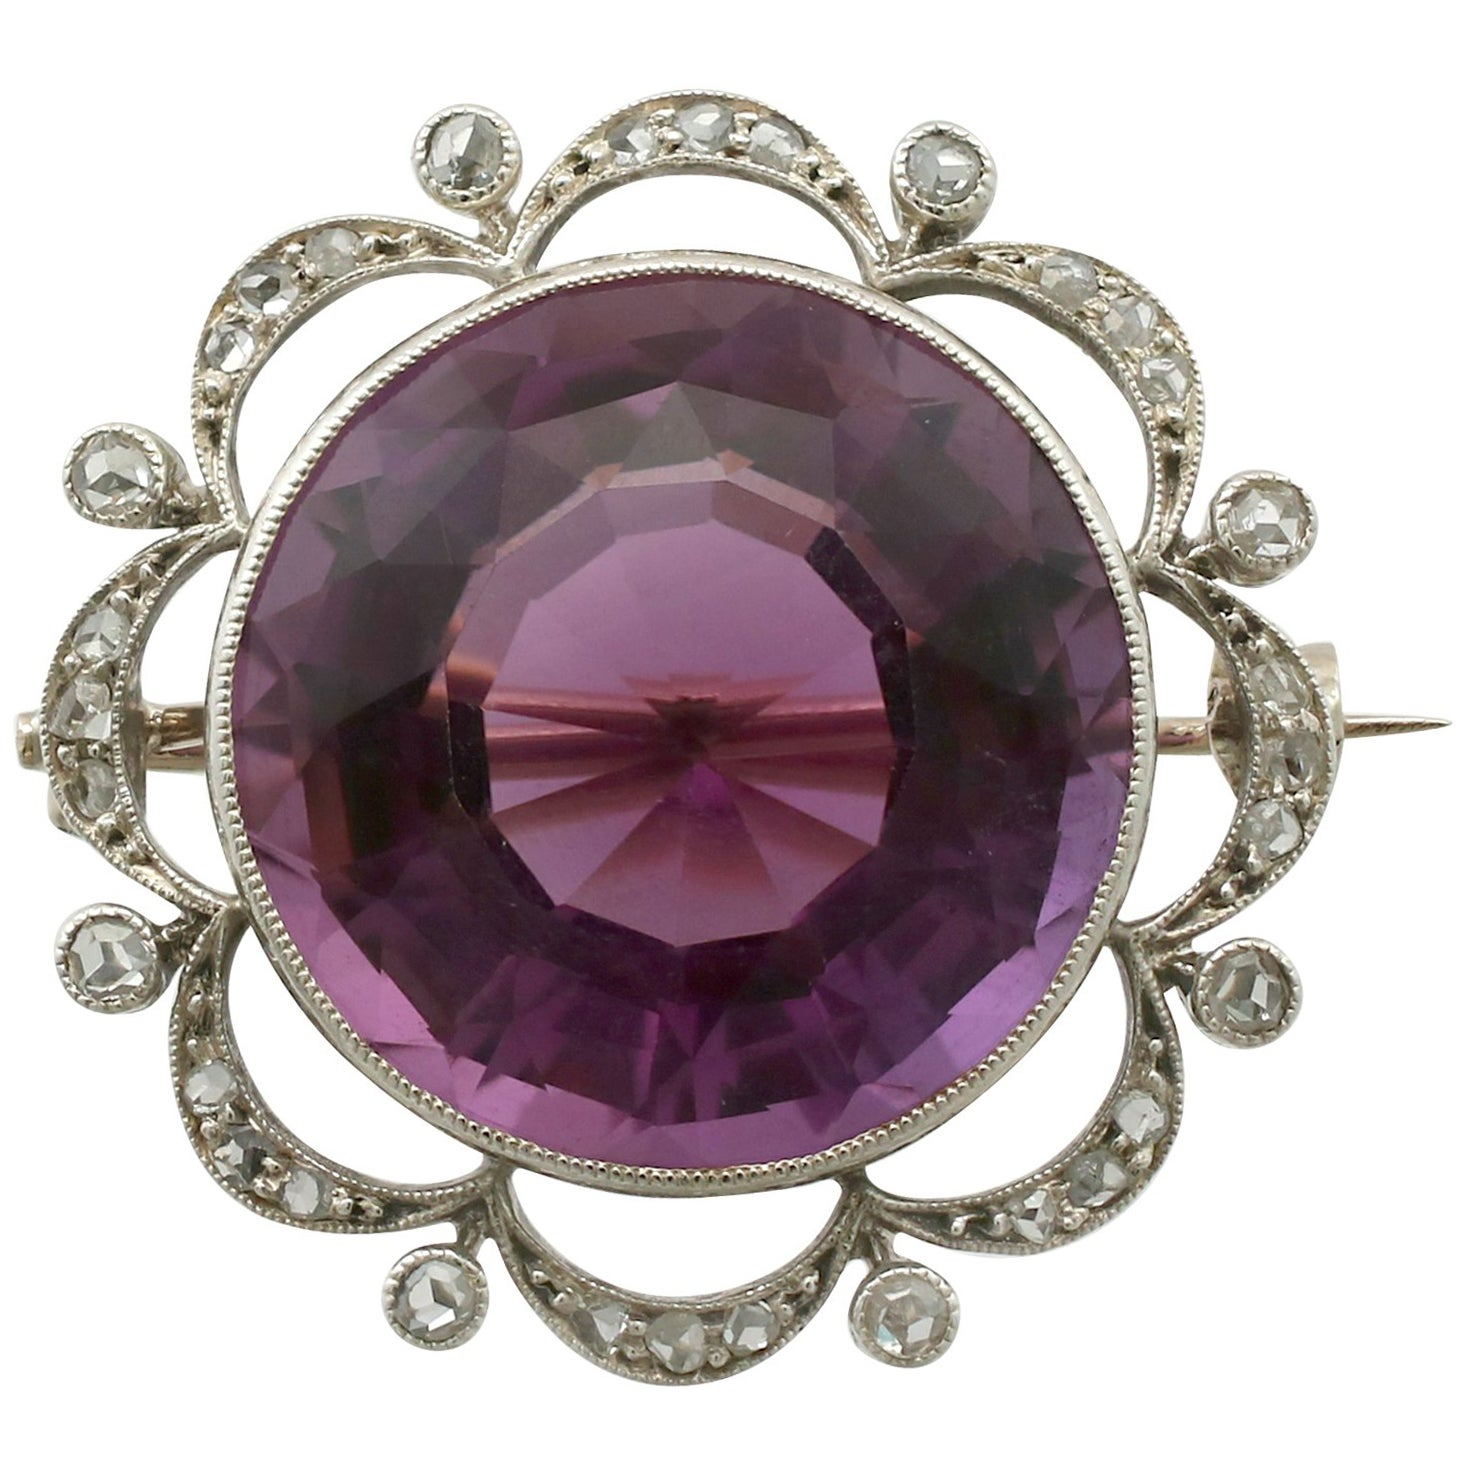 Lovely Ladies/womens 9ct 9carat Gold Brooch Set With A Pearl Amethysts Jewelry & Watches